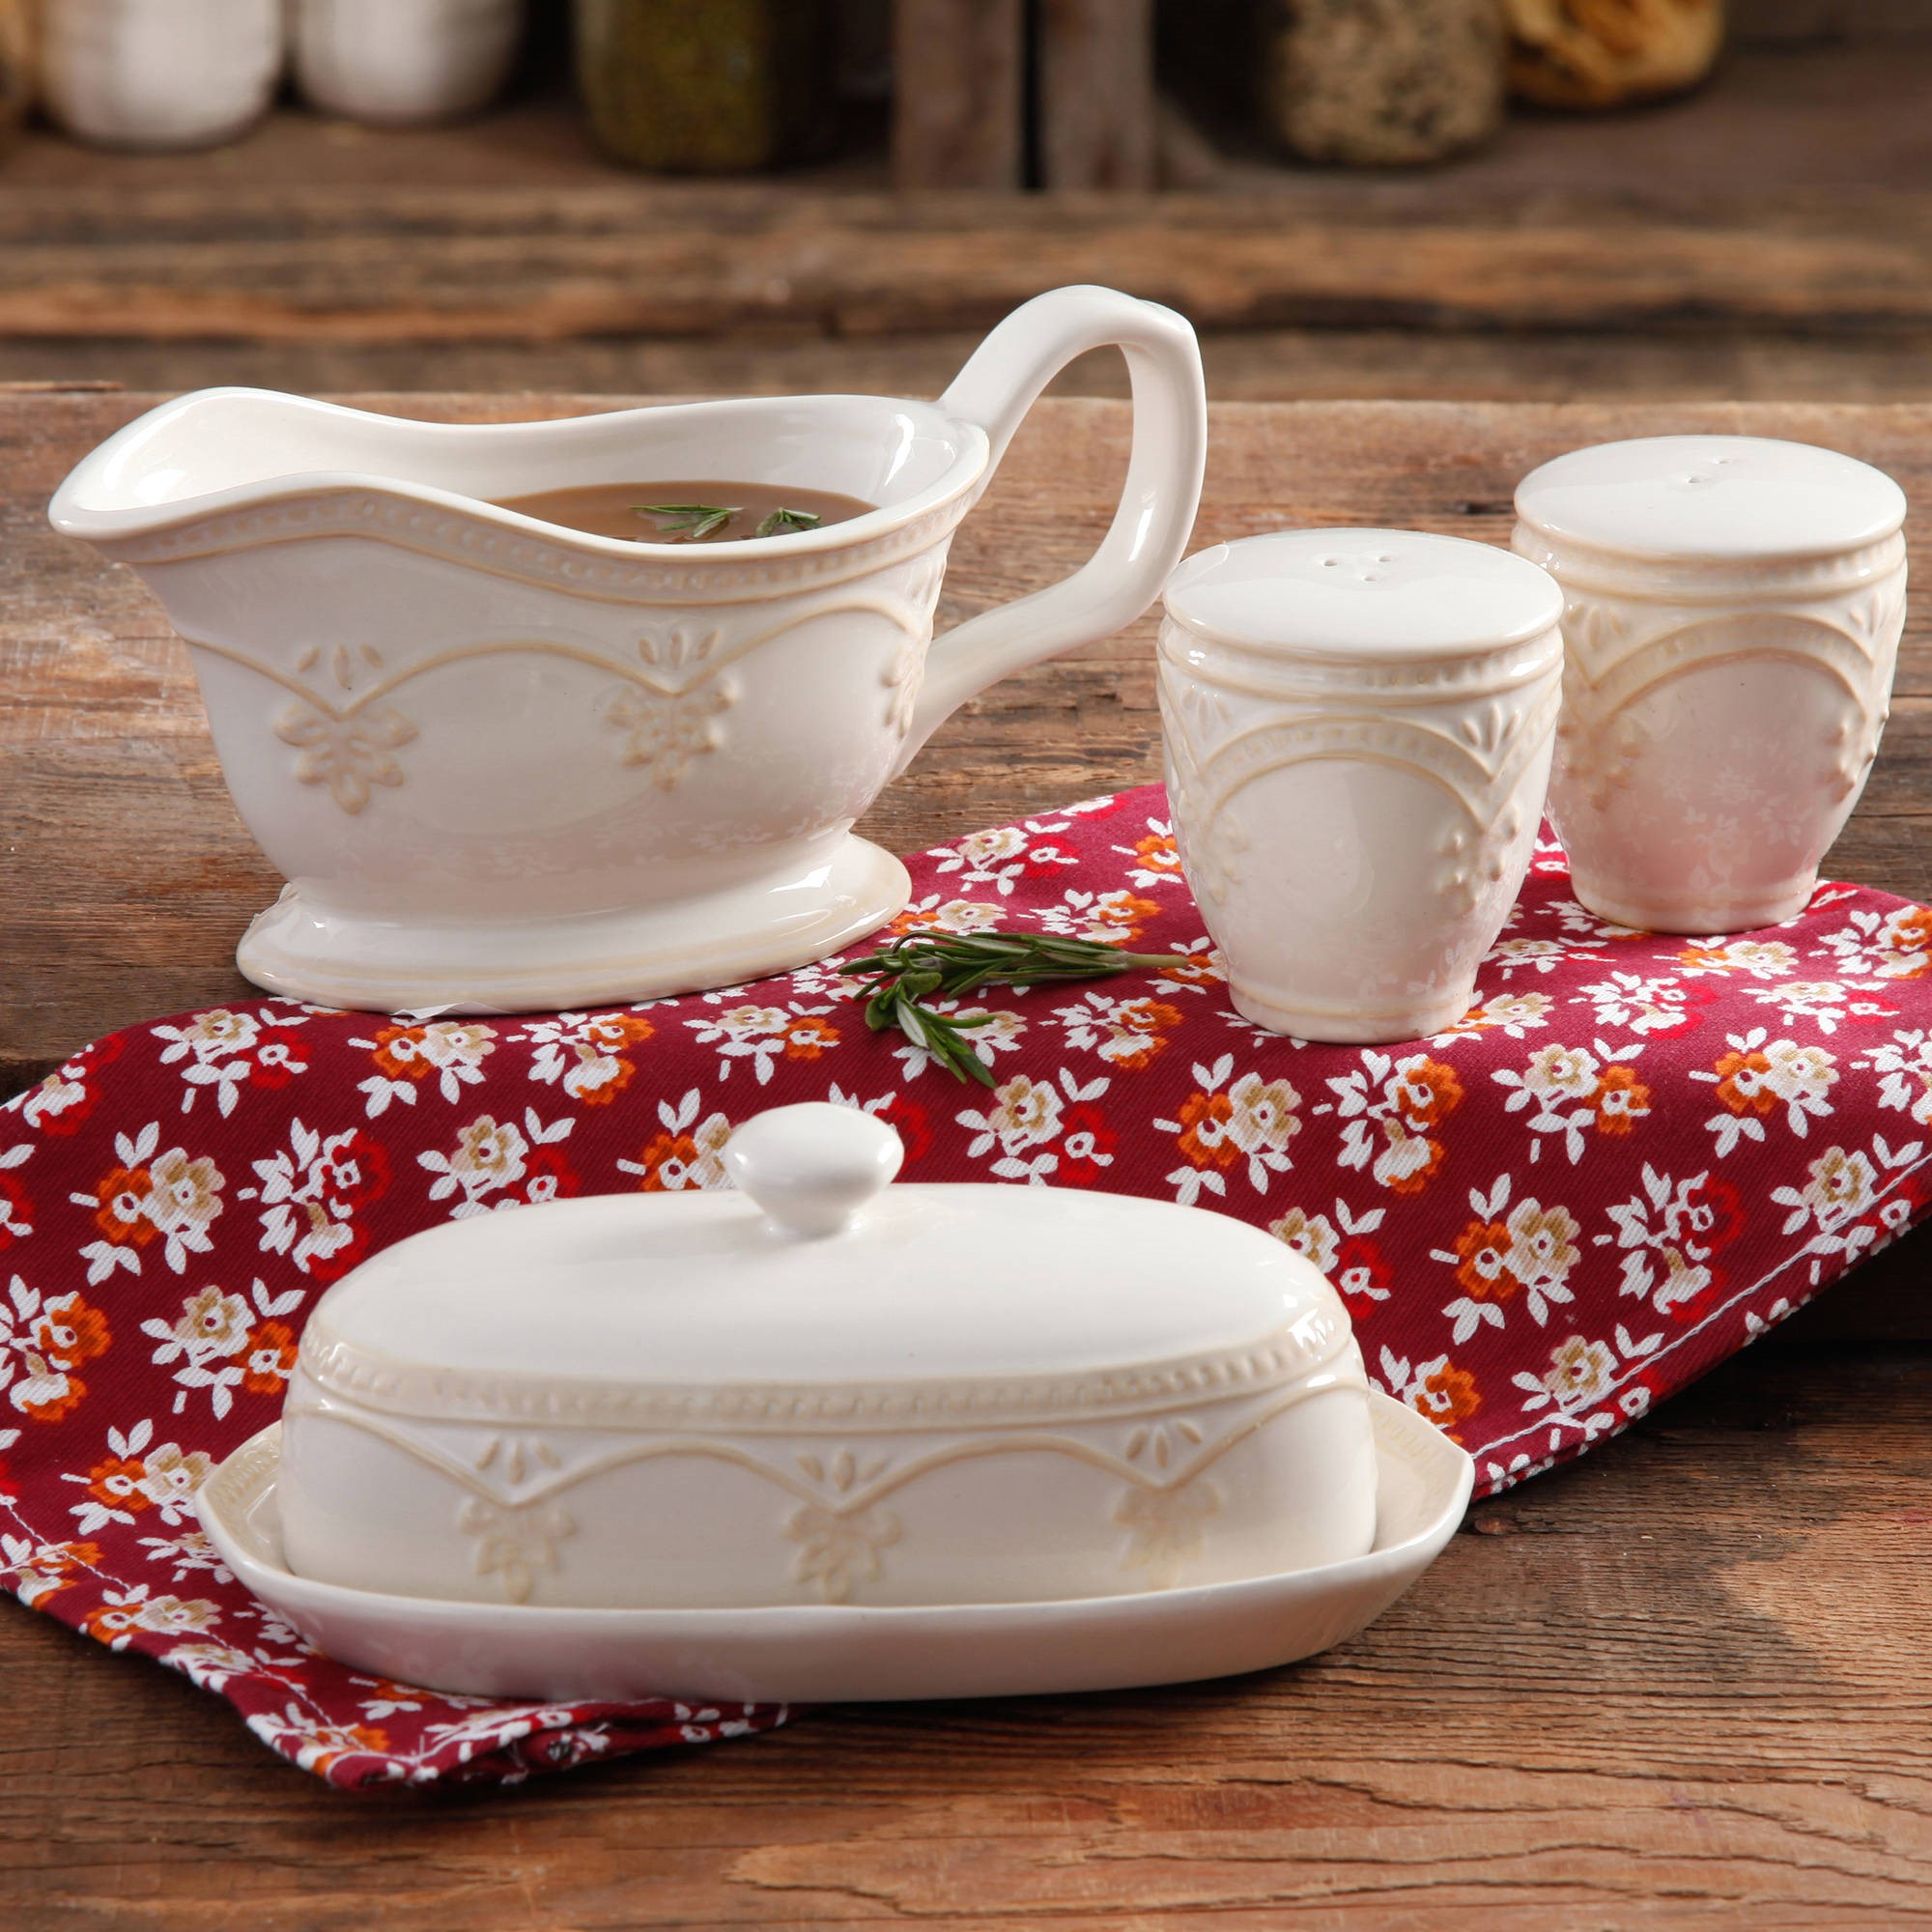 The Pioneer Woman Farmhouse Lace Butter Dish With Gravy Boat And Salt Pepper Shakers Walmart Com Walmart Com